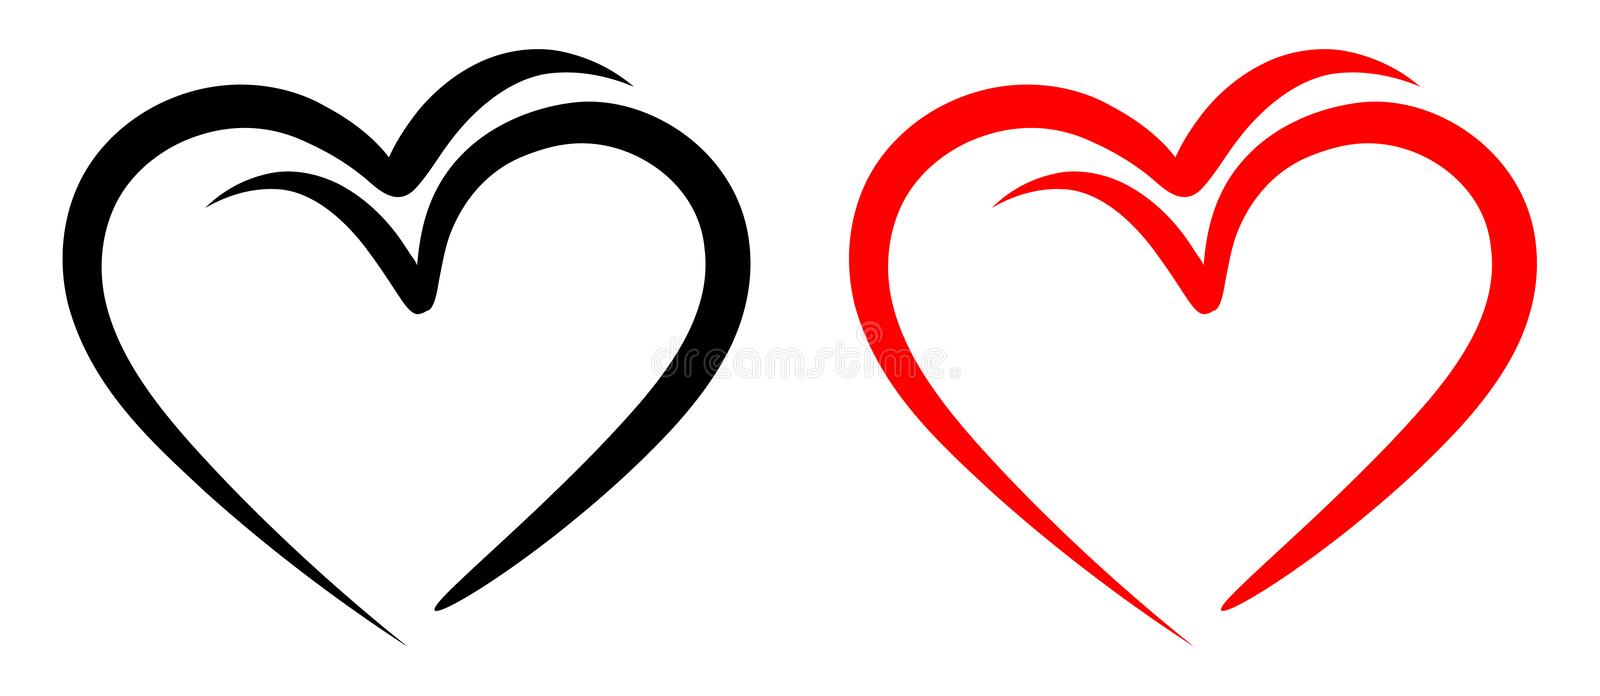 Love birds with red and black two hearts royalty free illustration